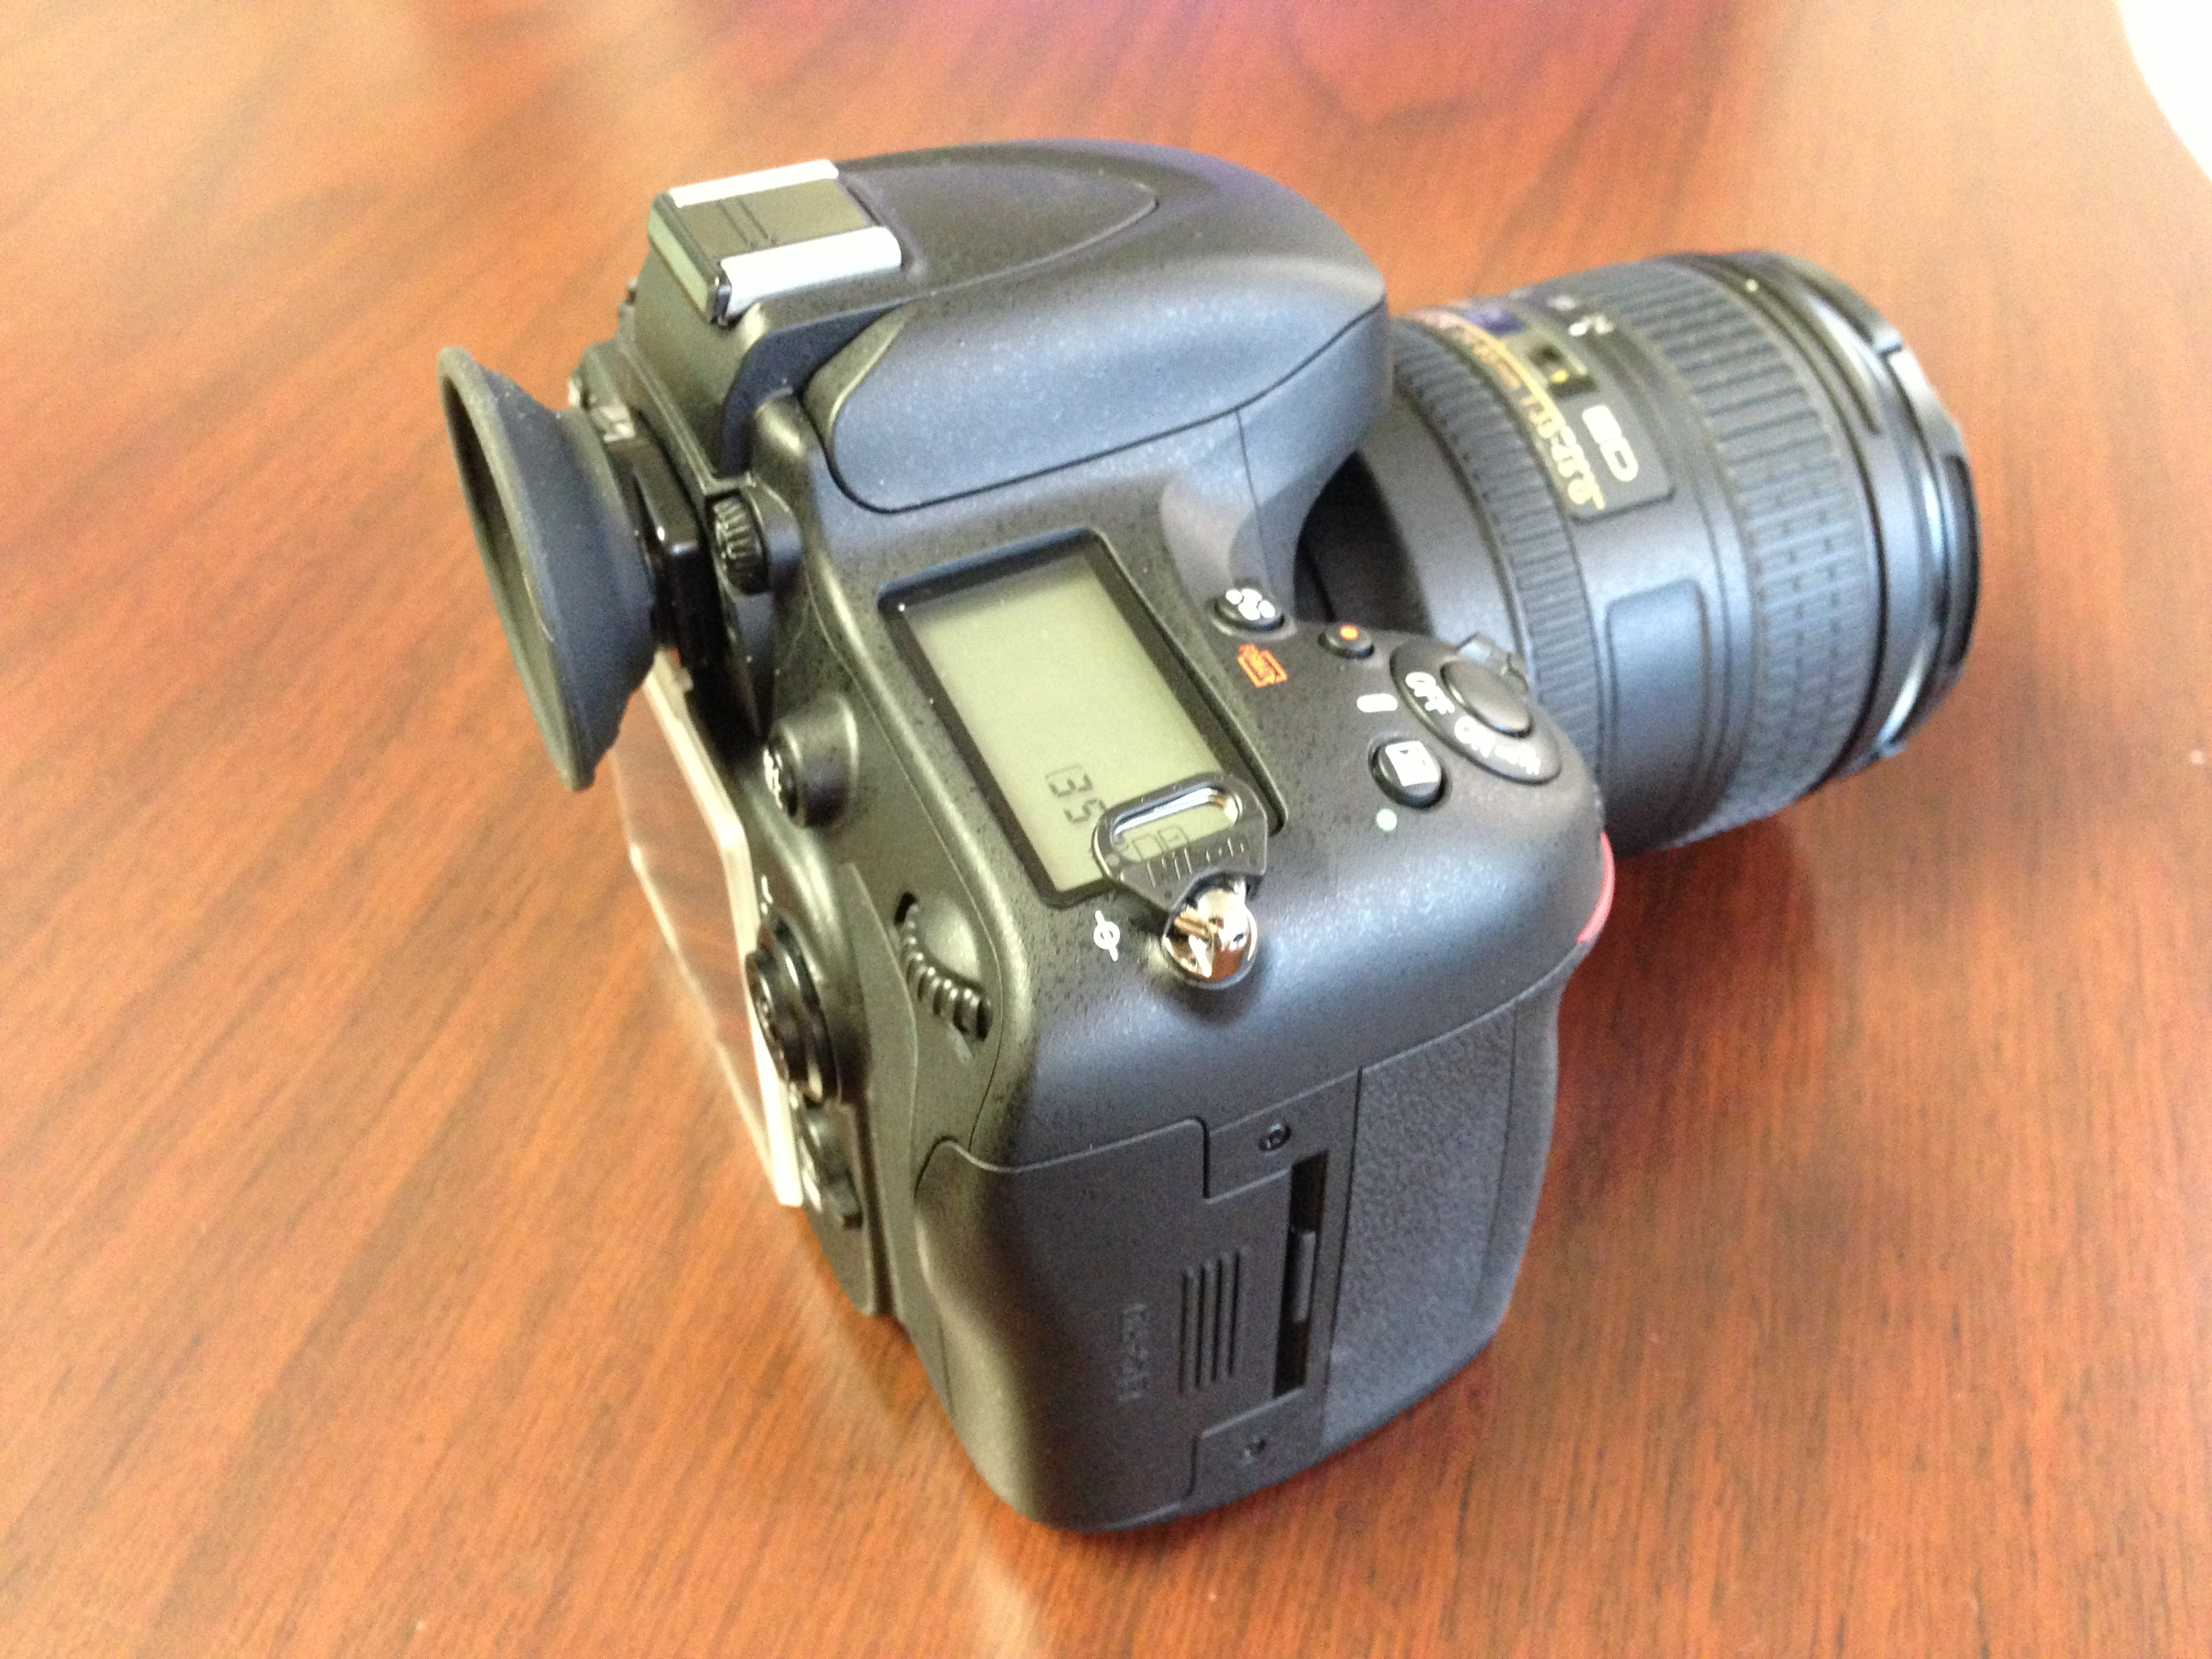 Convert the Nikon D600 Viewfinder into a Round Viewfinder (Works with D5100, D7000, and Others)